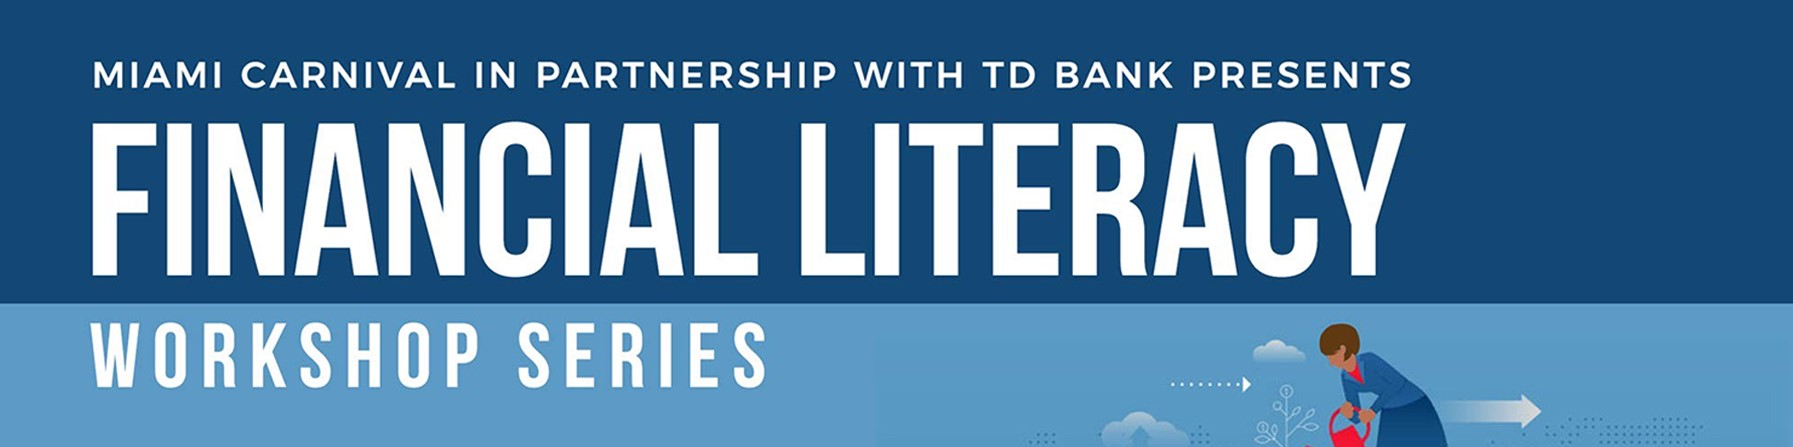 TD Bank Partners with Miami Carnival to offer Virtual Financial Literacy Workshop Series